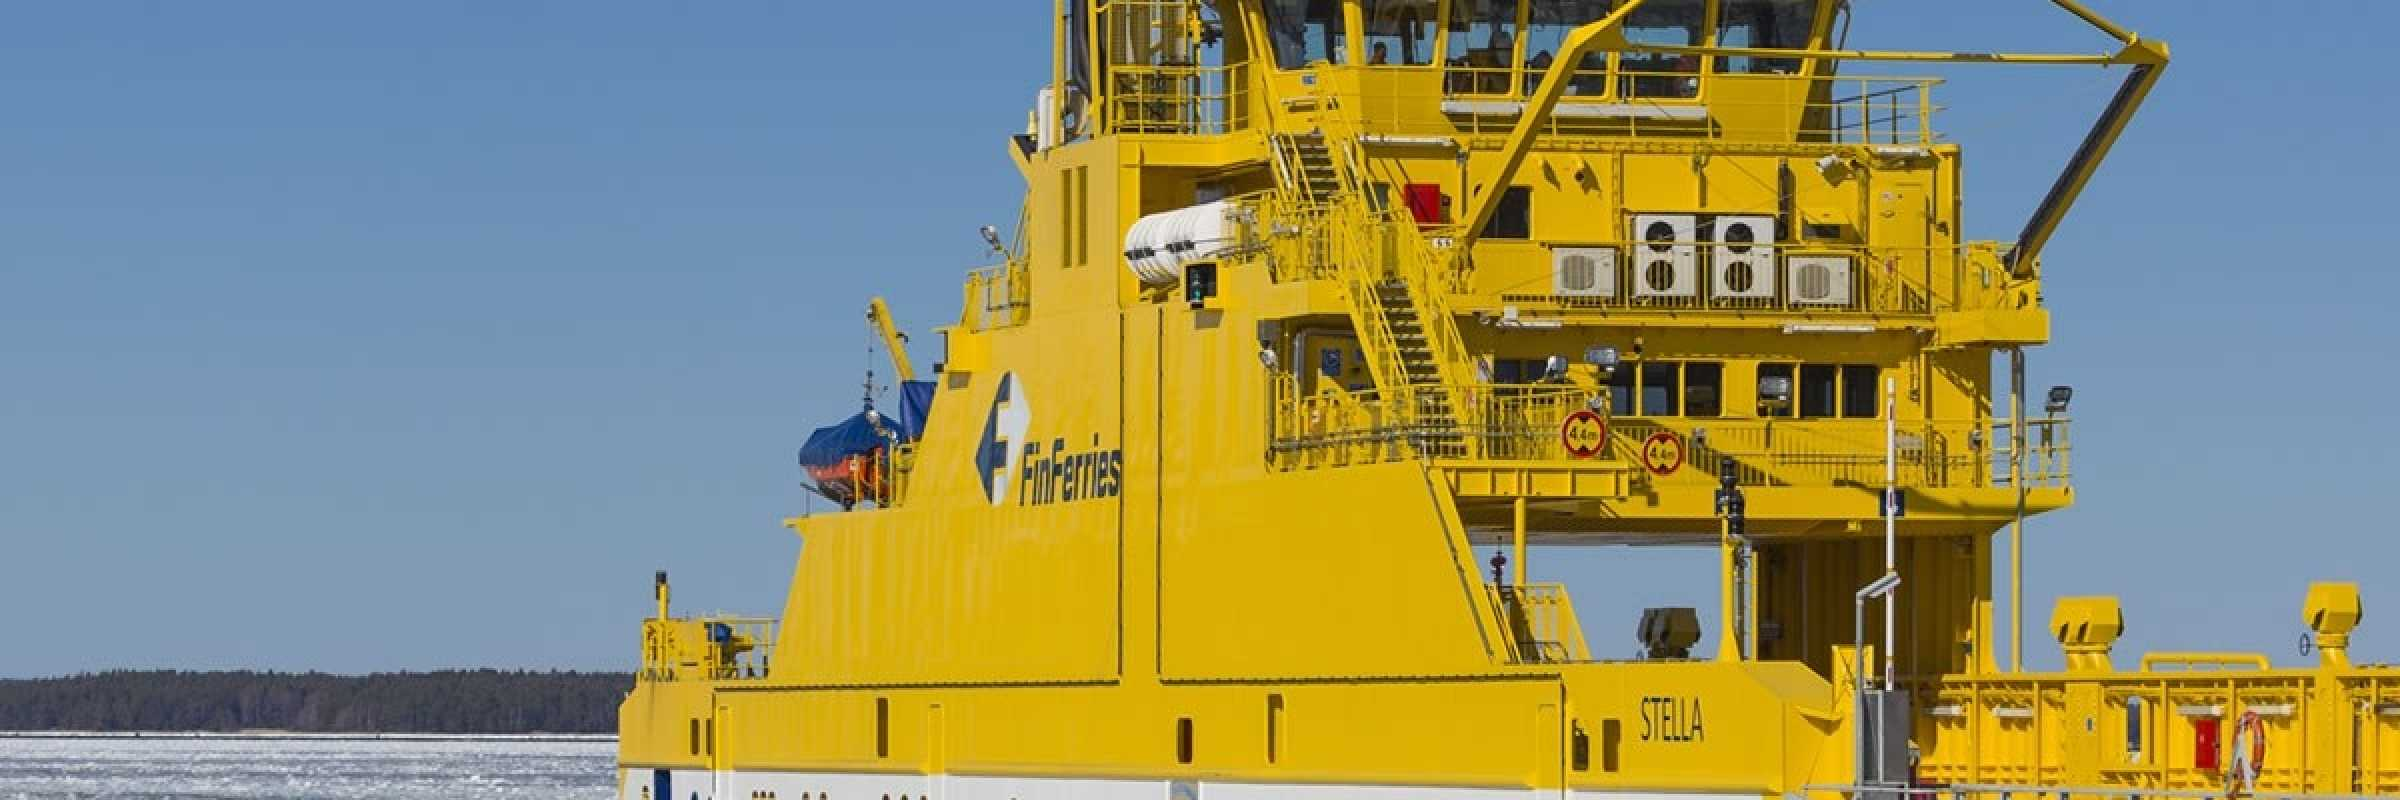 Rolls-Royce and Finferries sign cooperation agreement to optimise ship safety and efficiency